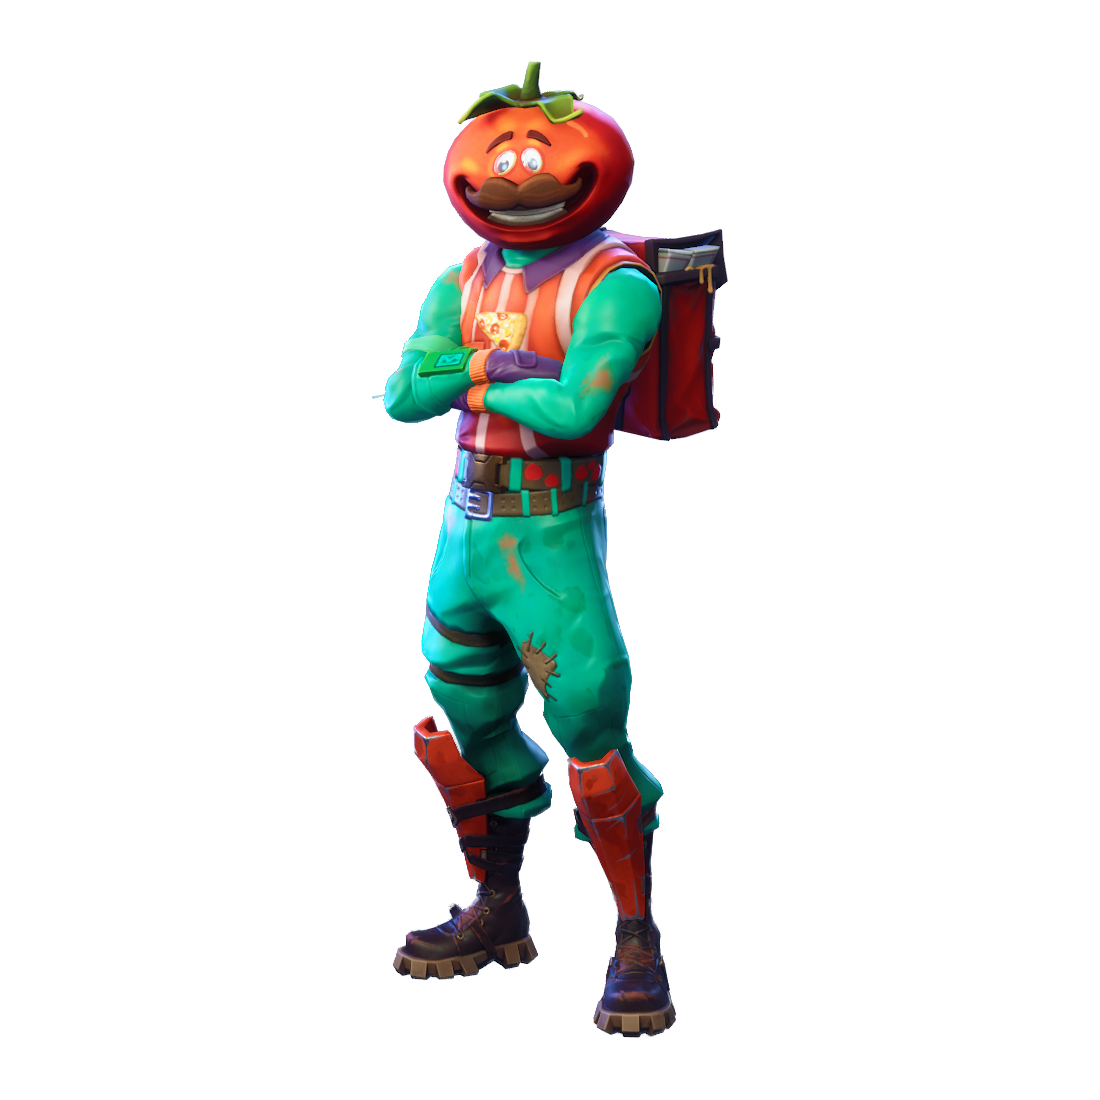 Fortnite tomatohead png image. Tomatoes clipart person